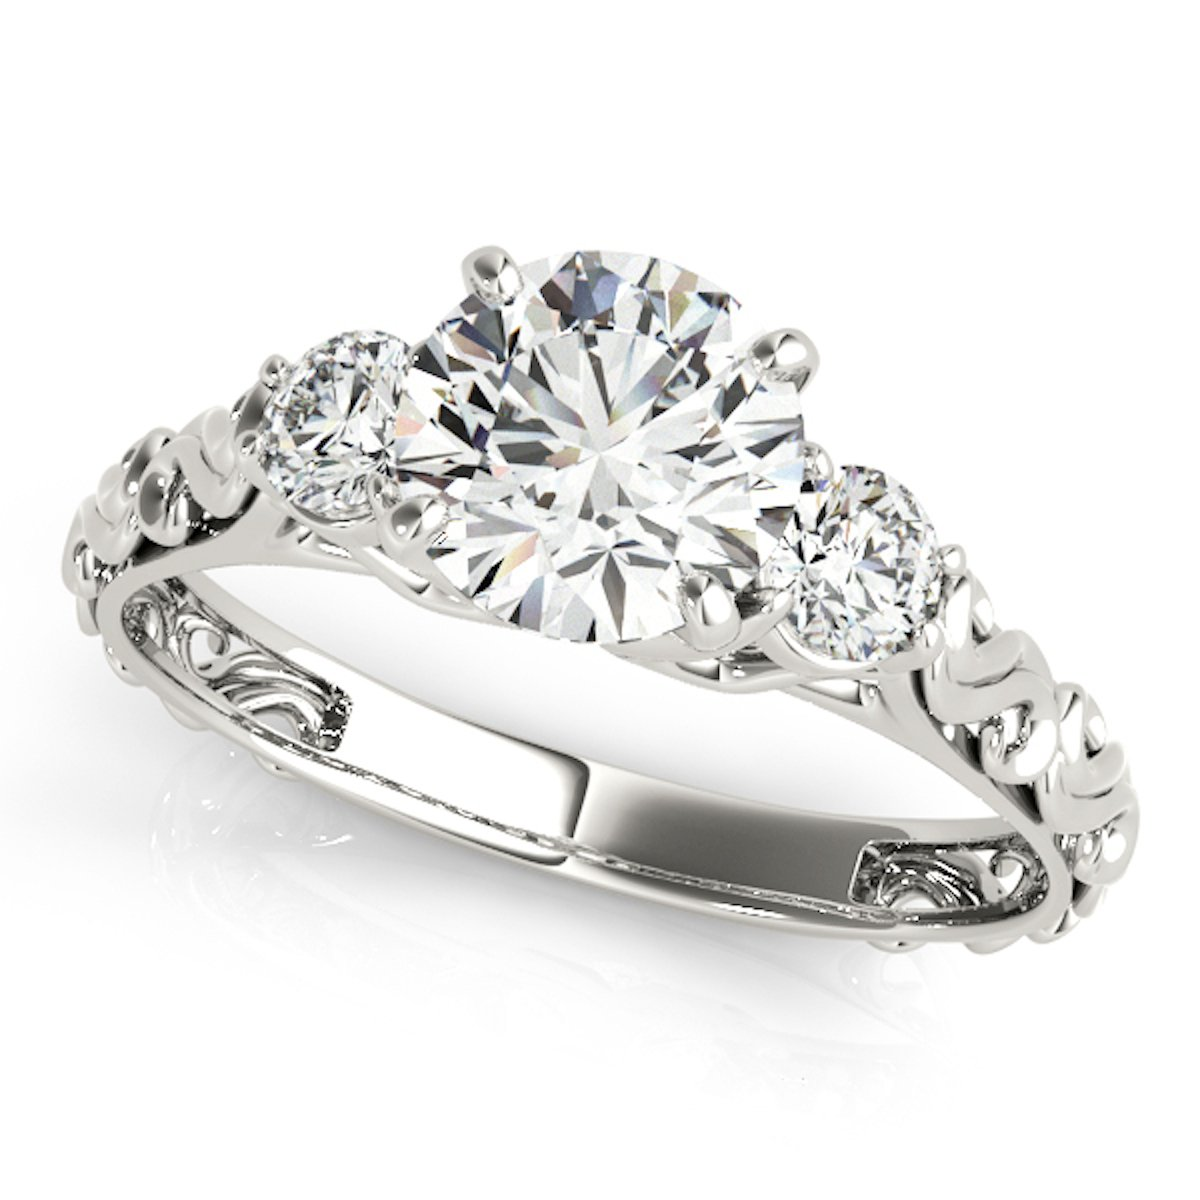 1/2 Carat Halo Engagement Diamond Ring Crafted In 14k White Gold